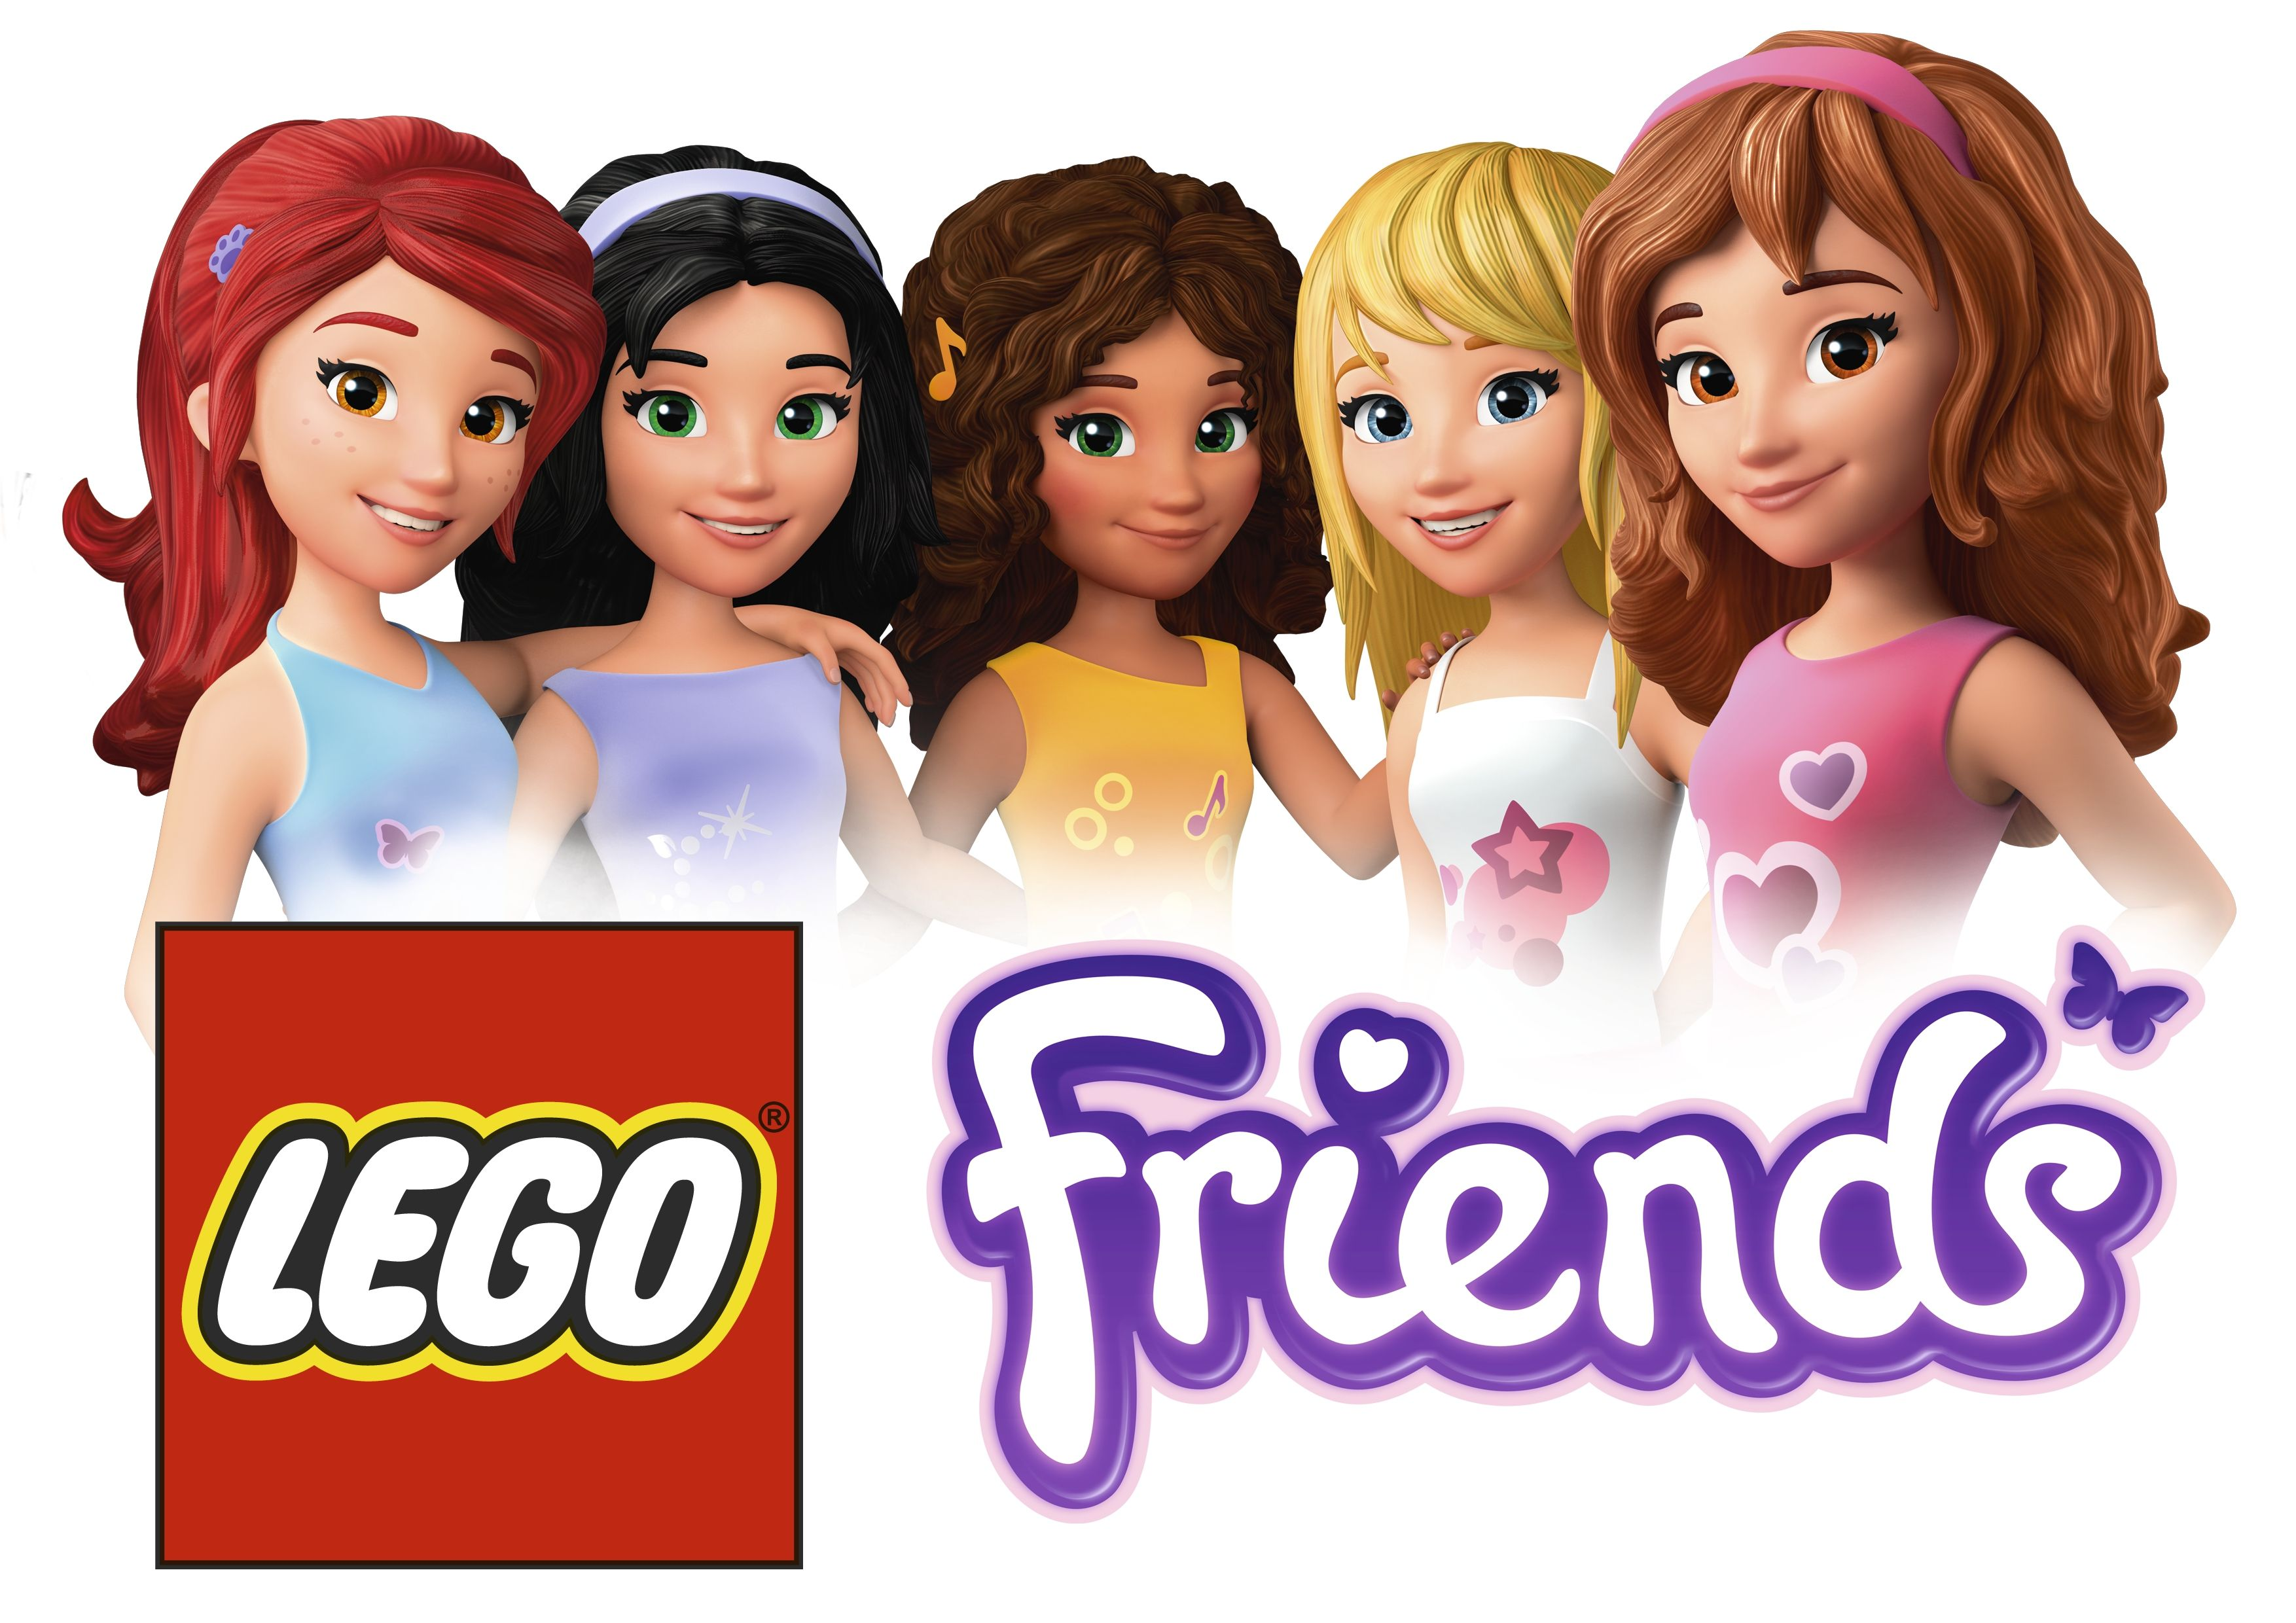 Lego friends logo clipart royalty free High res logo | 7th Birthday - Lego in 2019 | Lego friends party ... royalty free